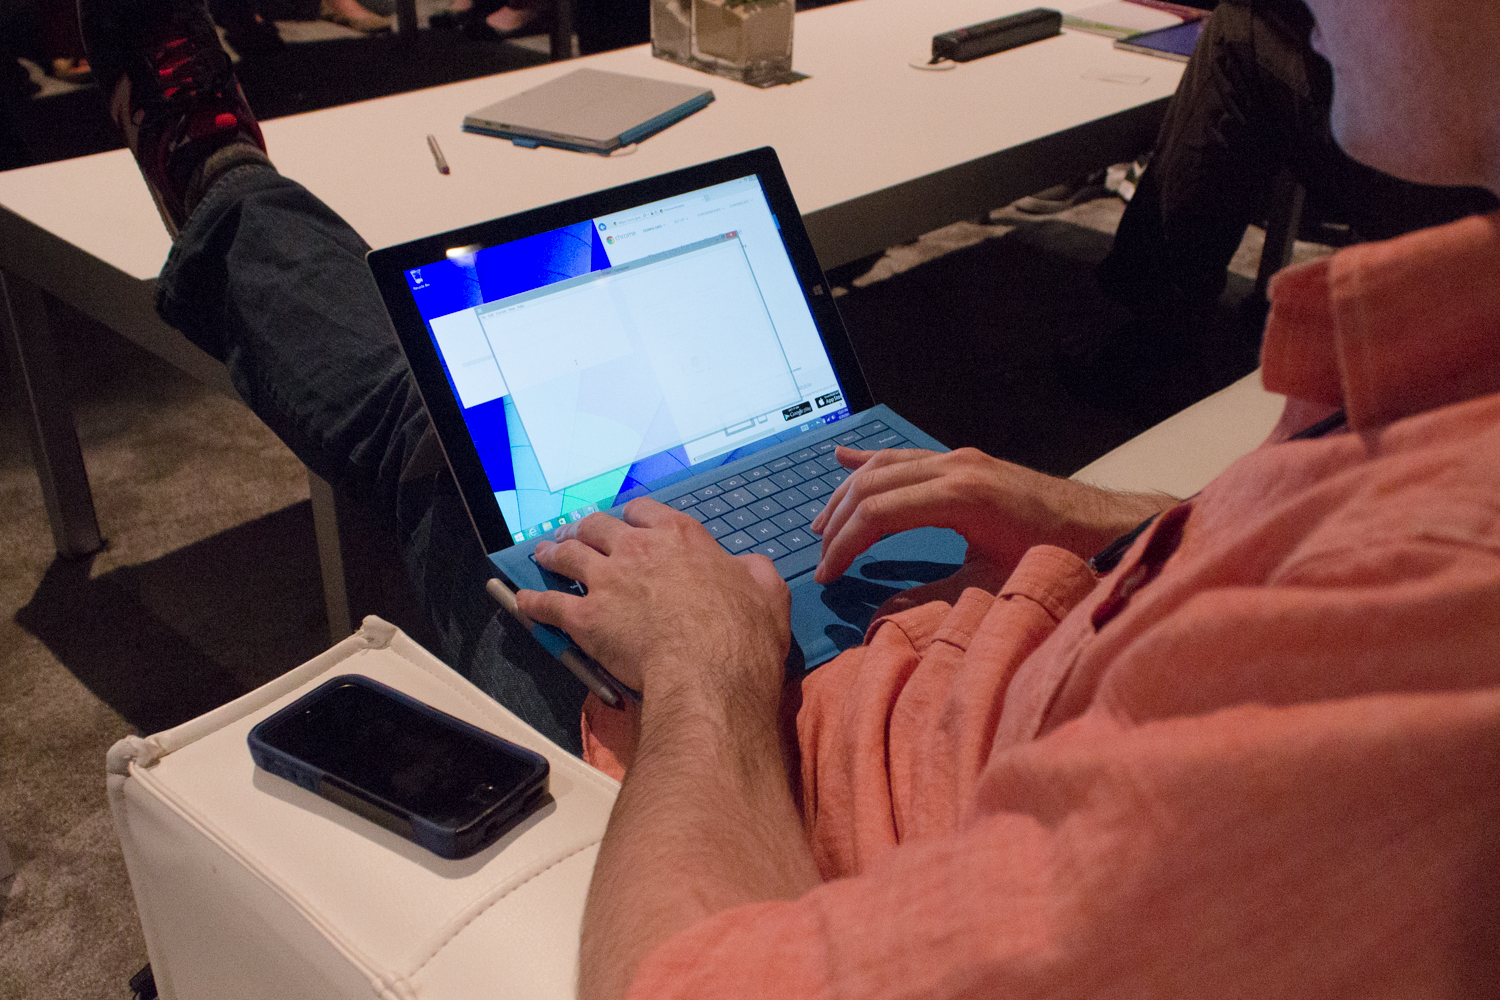 Typing on the Surface Pro 3.